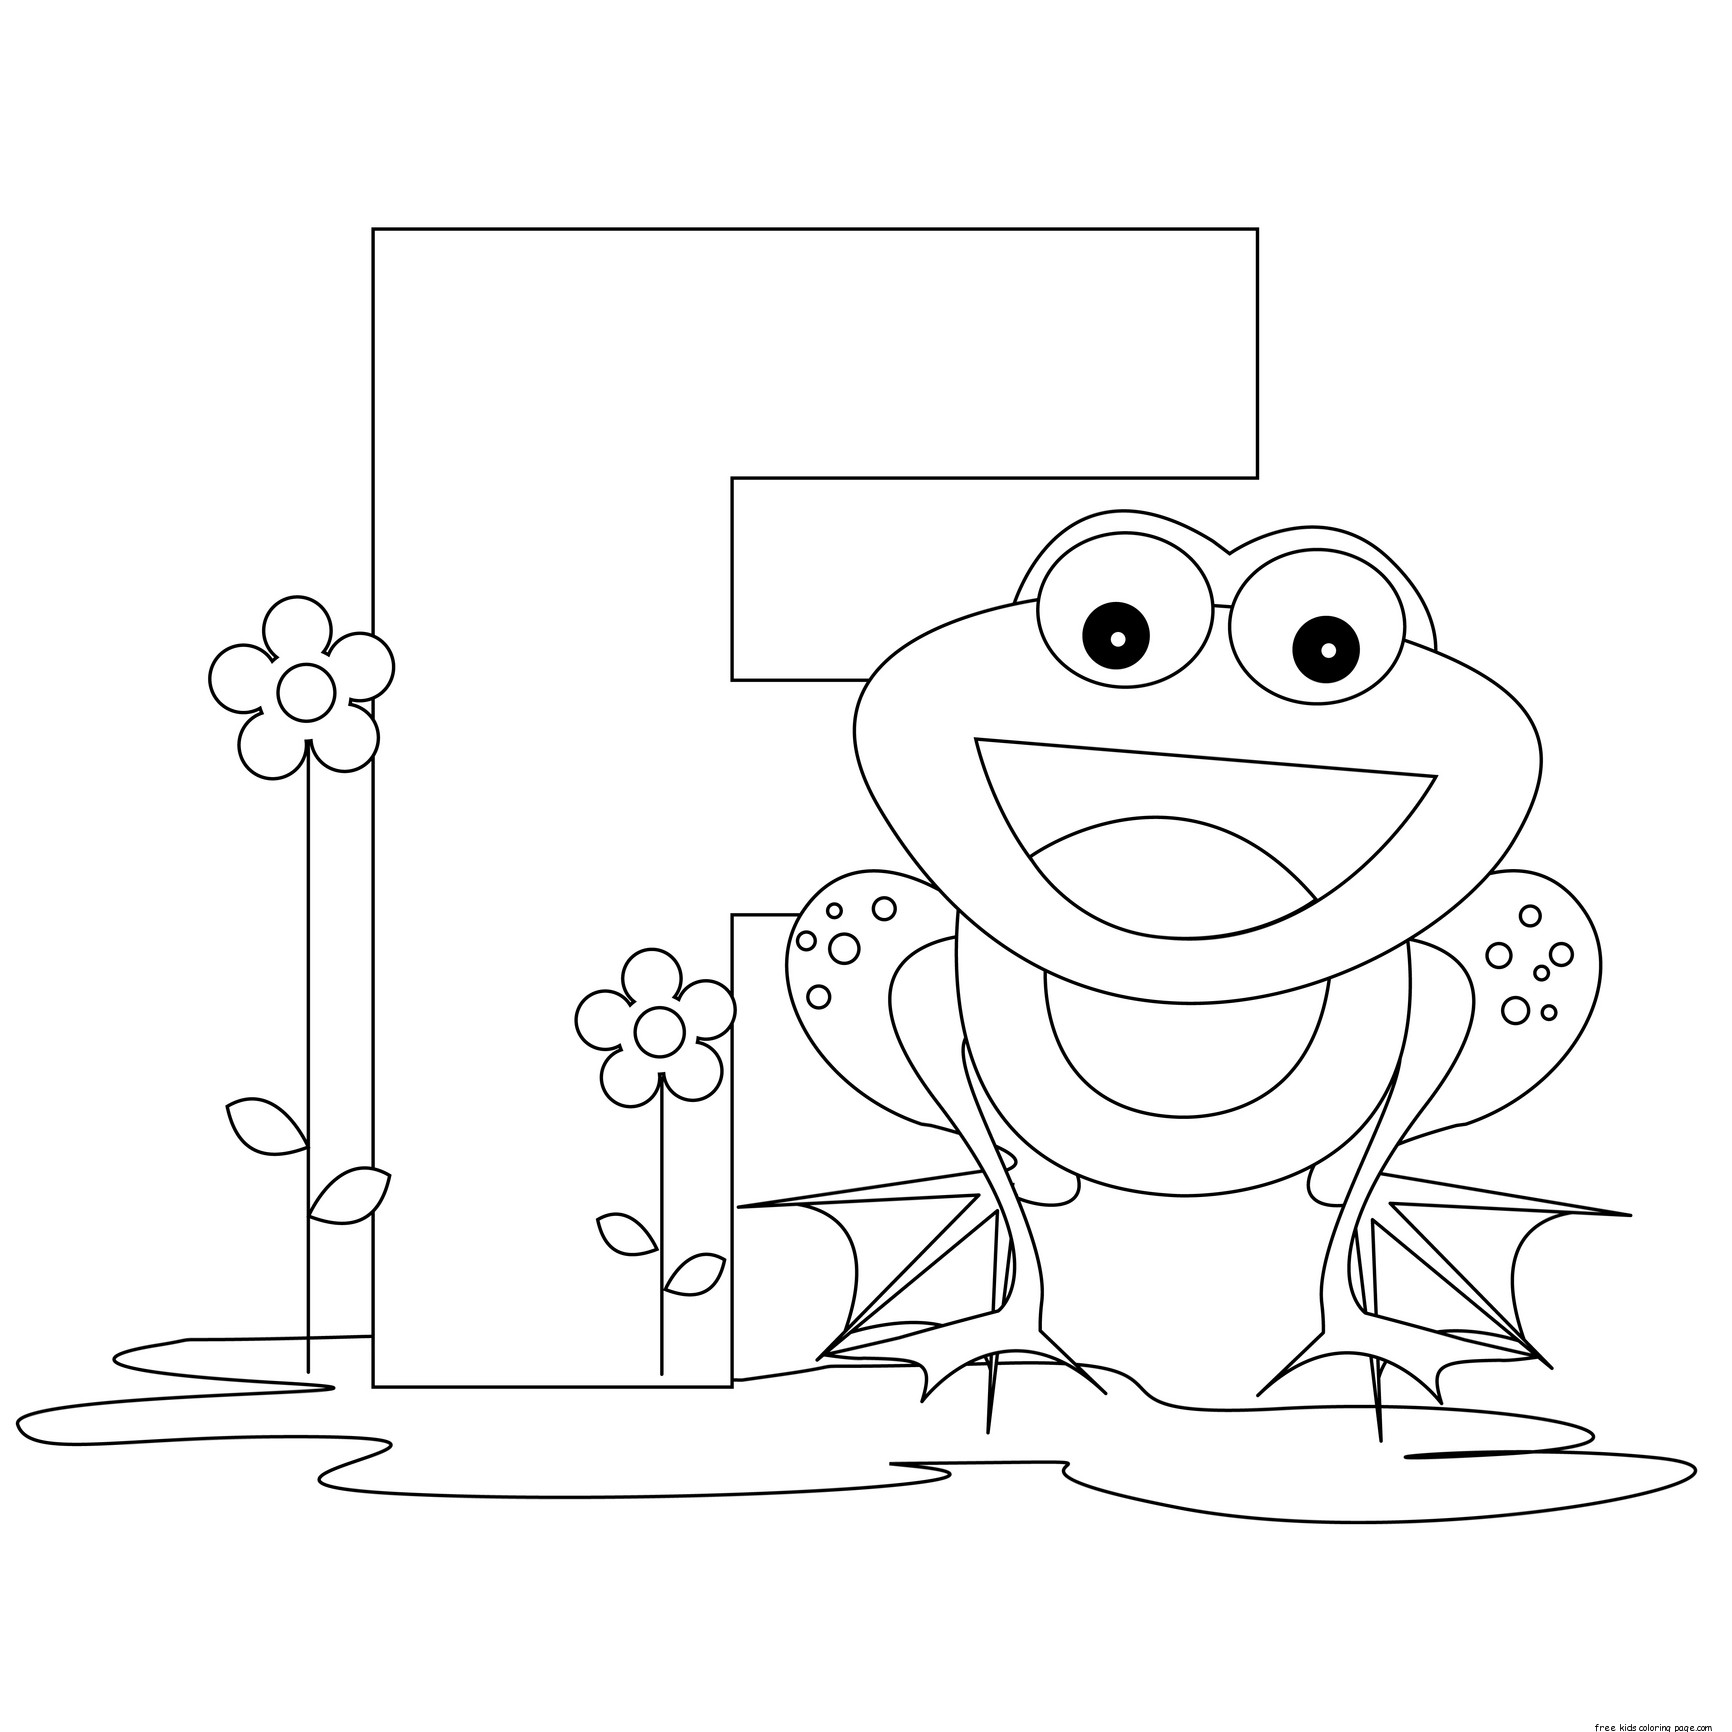 Pritnable Alphabet Letter F Preschool Activities Worksheetsfree Printable Coloring Pages For Kids